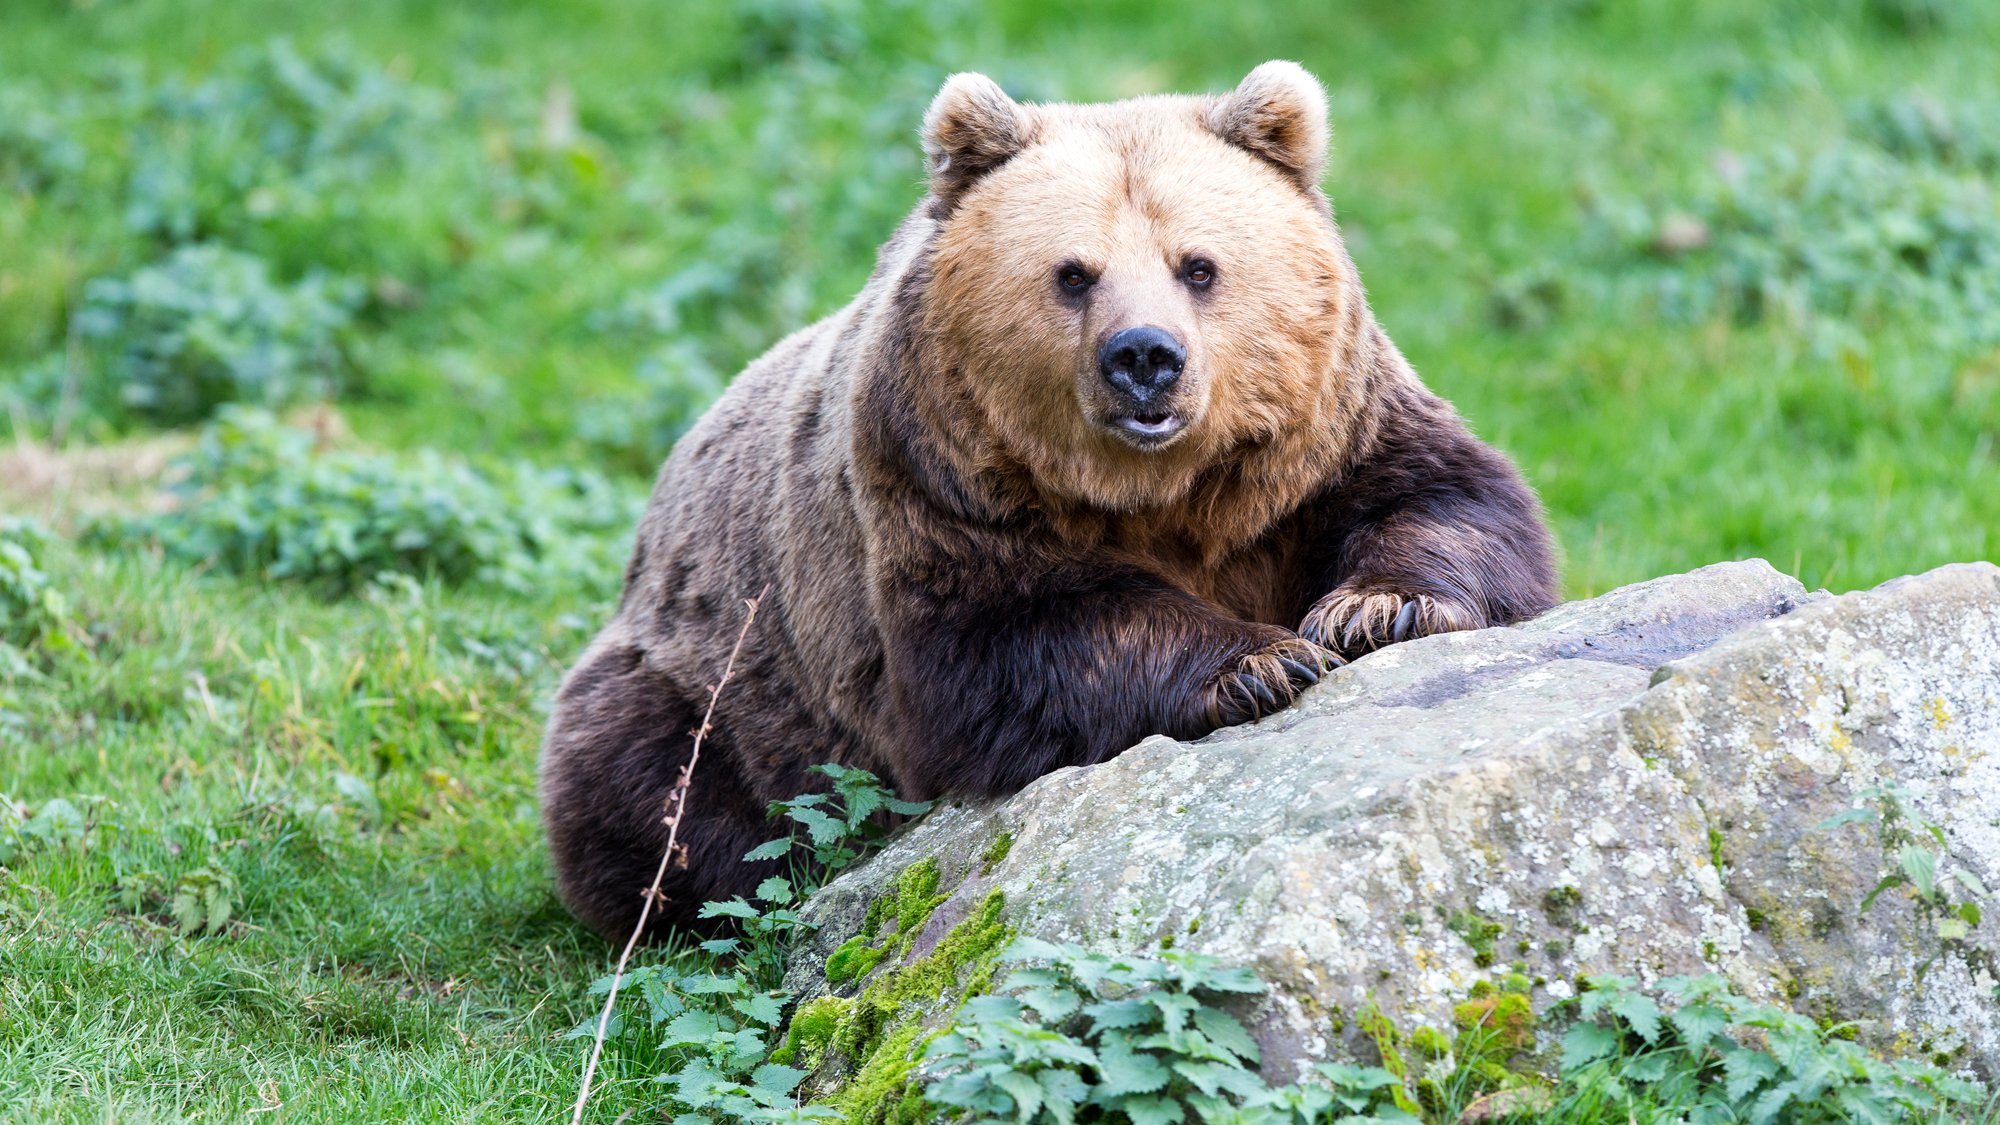 Bear dating sites in europe